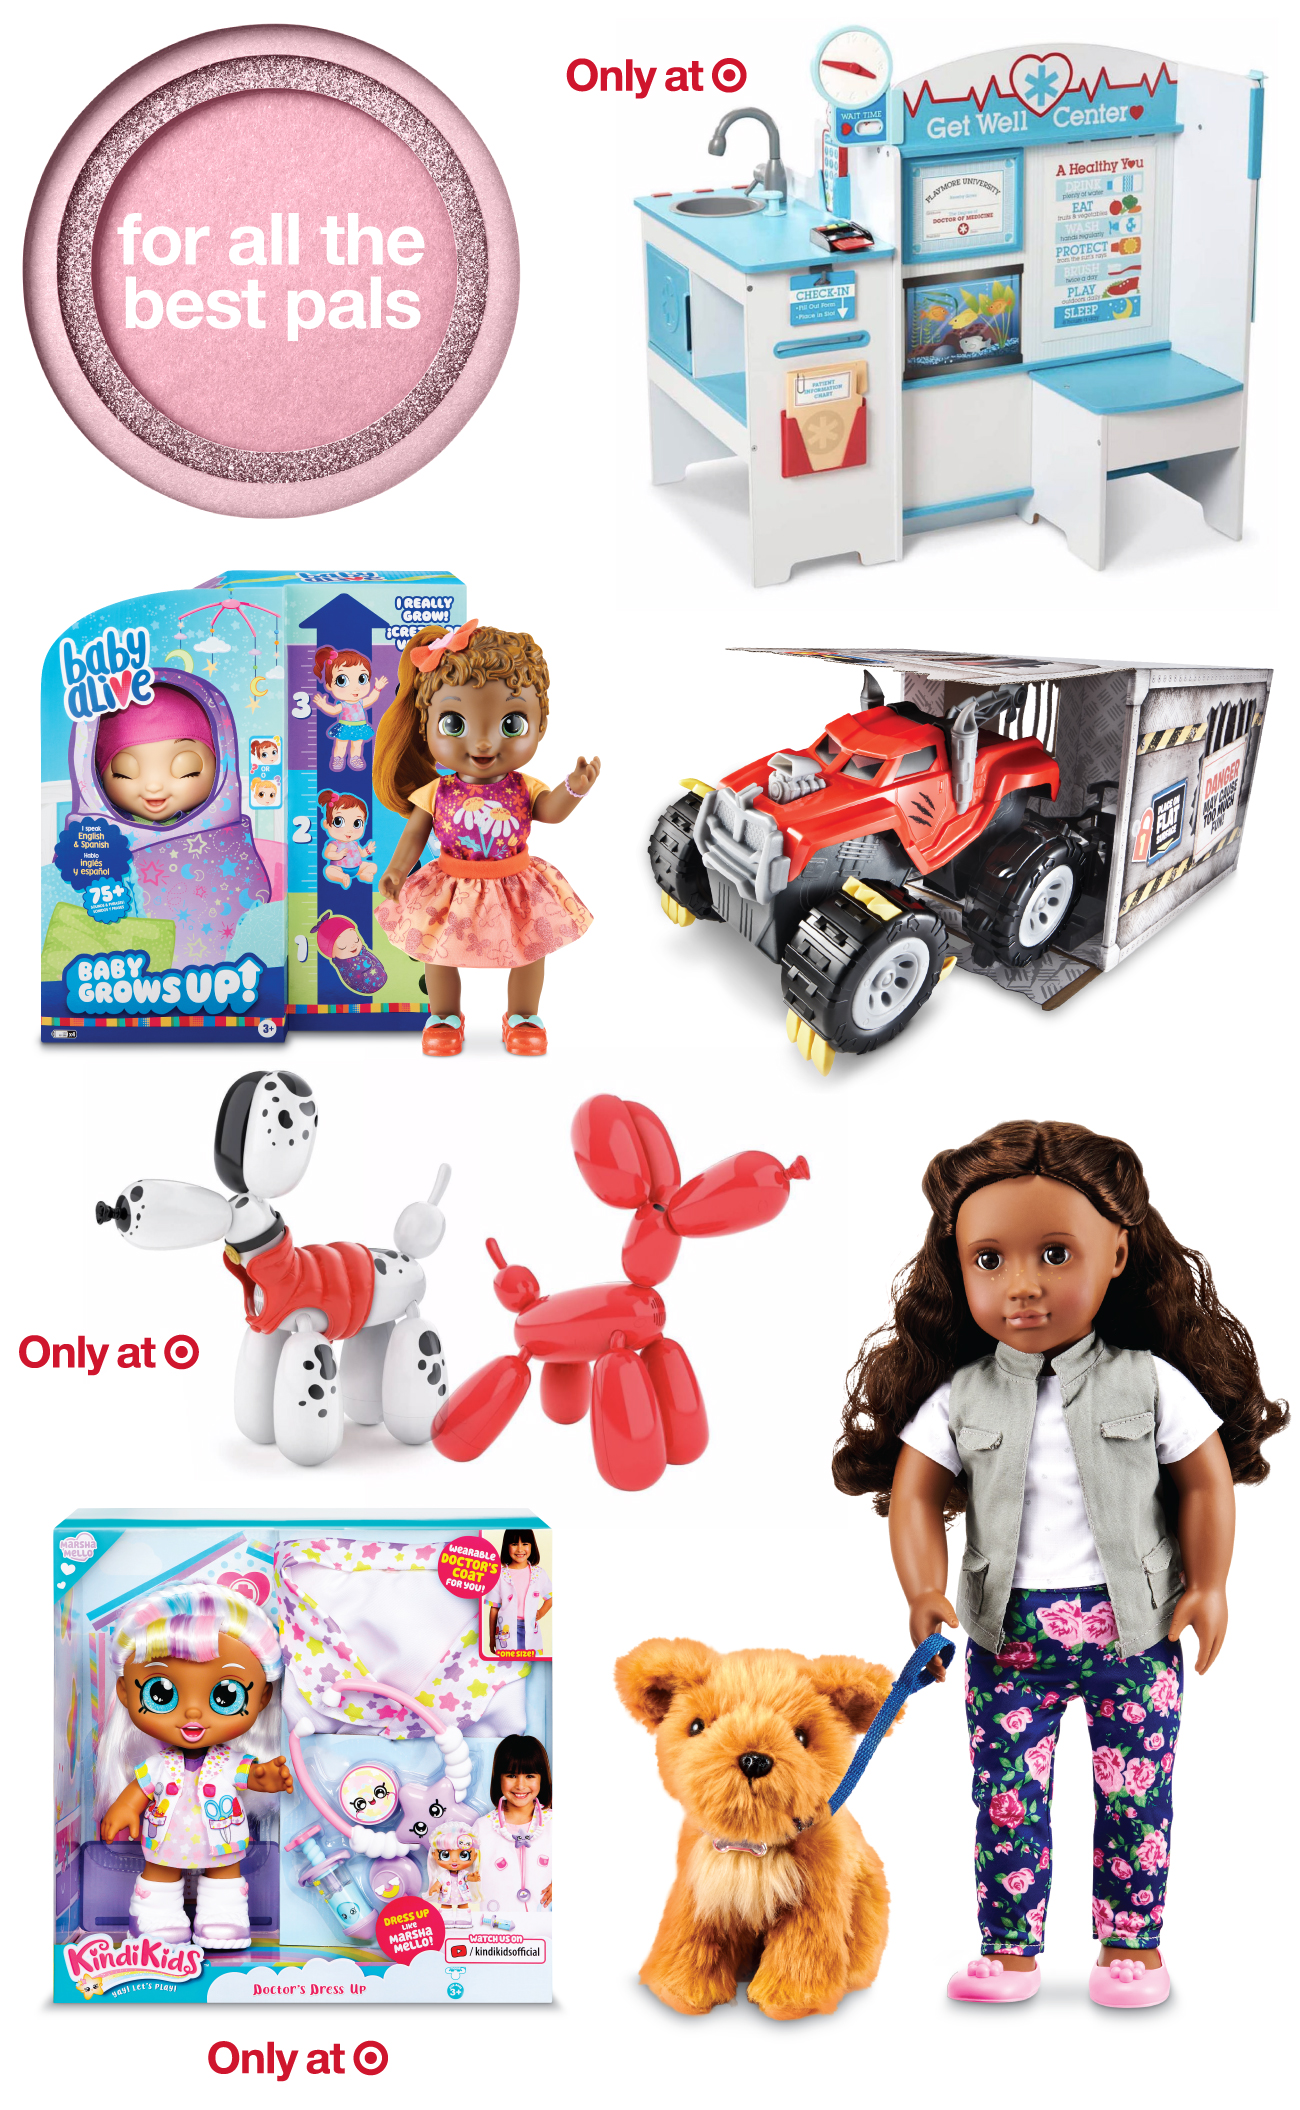 A collage of top toys and games for best pals